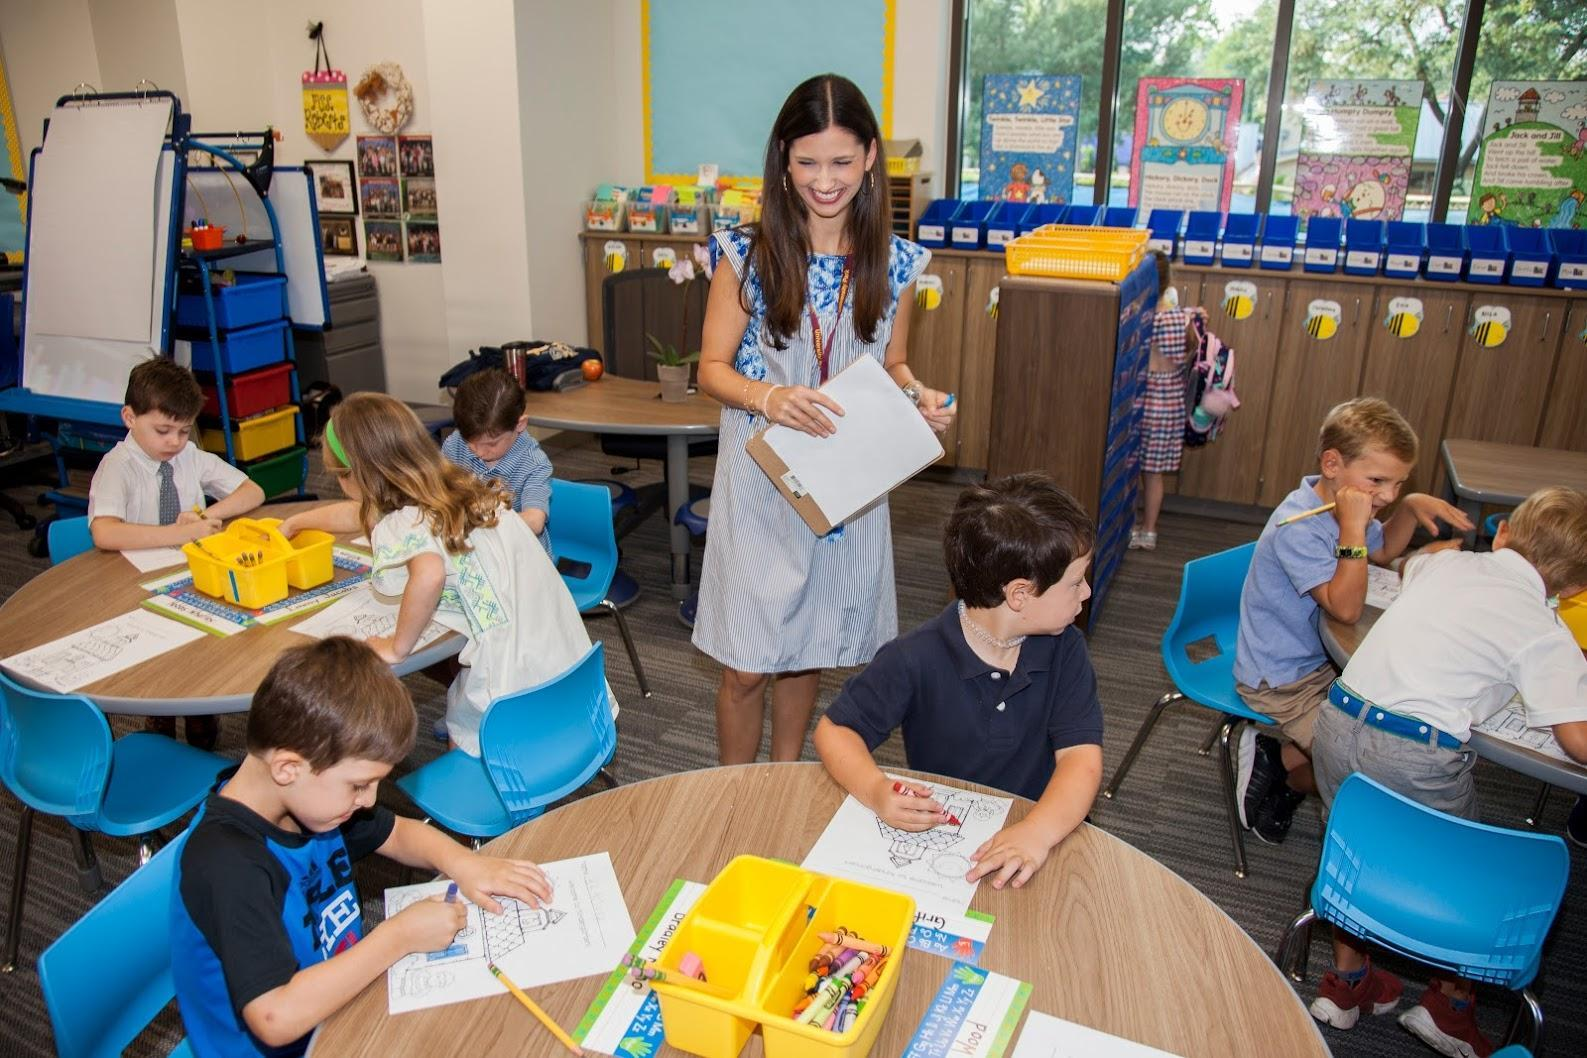 A teacher with her students in the classroom at University Park Elementary